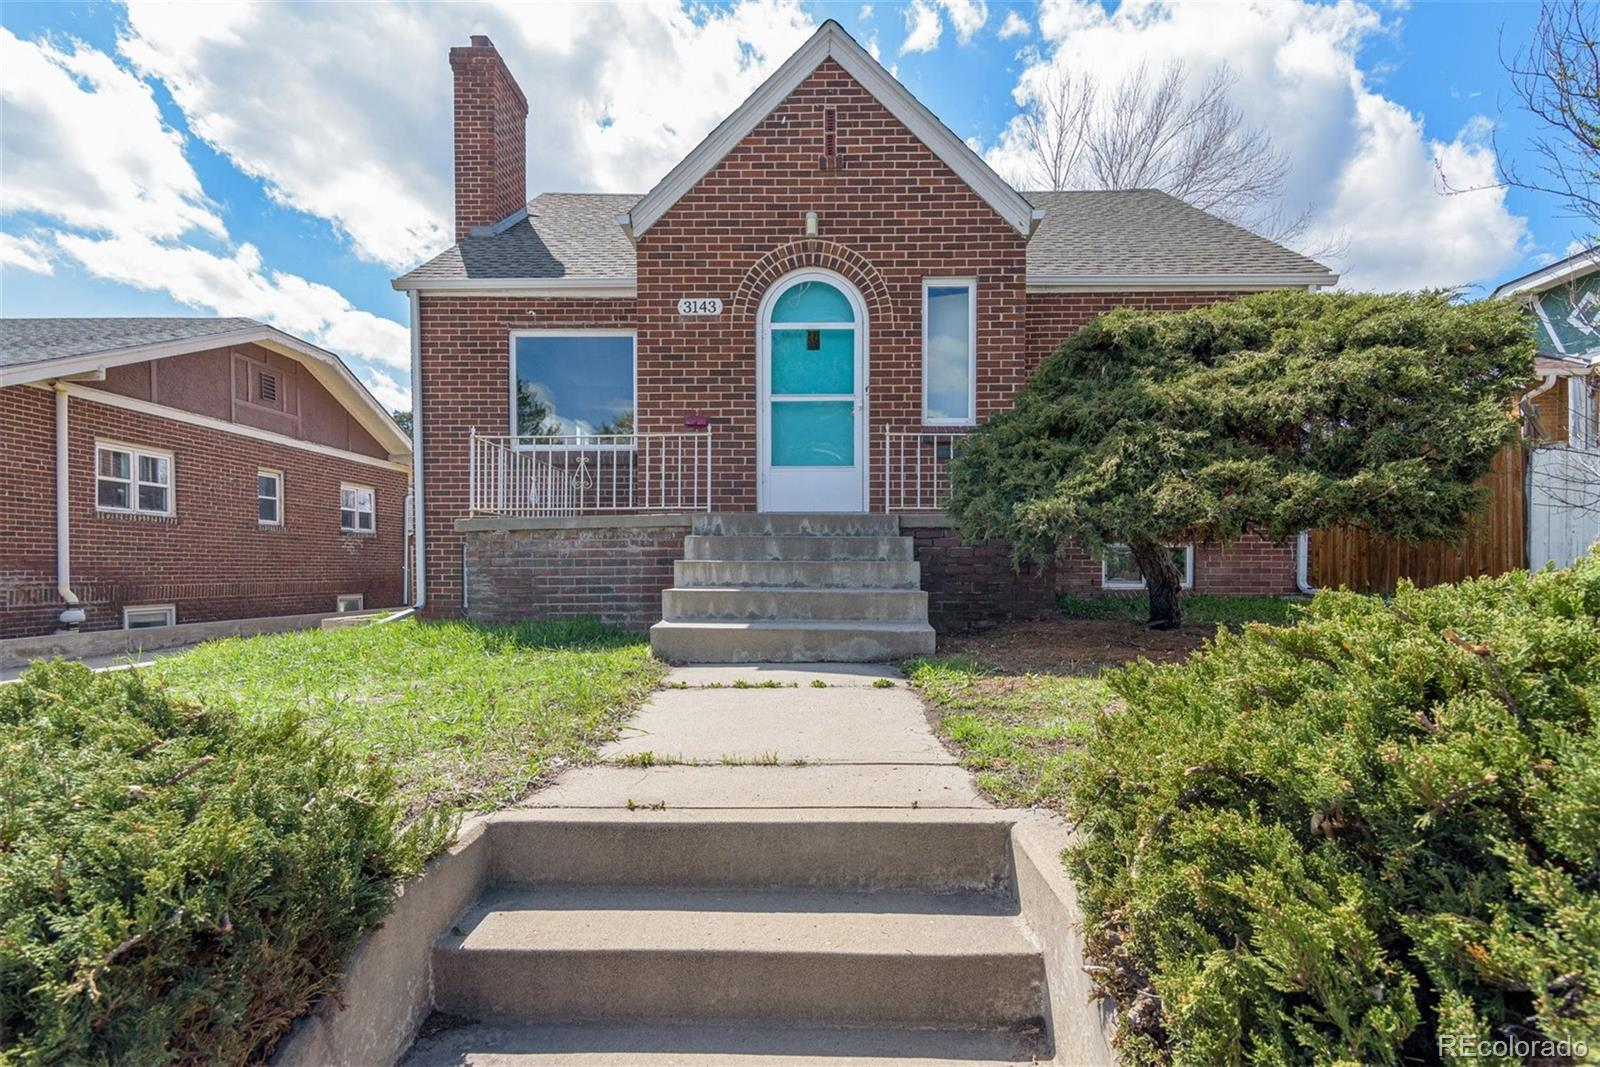 3143 Sheridan Boulevard, Wheat Ridge, CO 80214 - #: 4150101